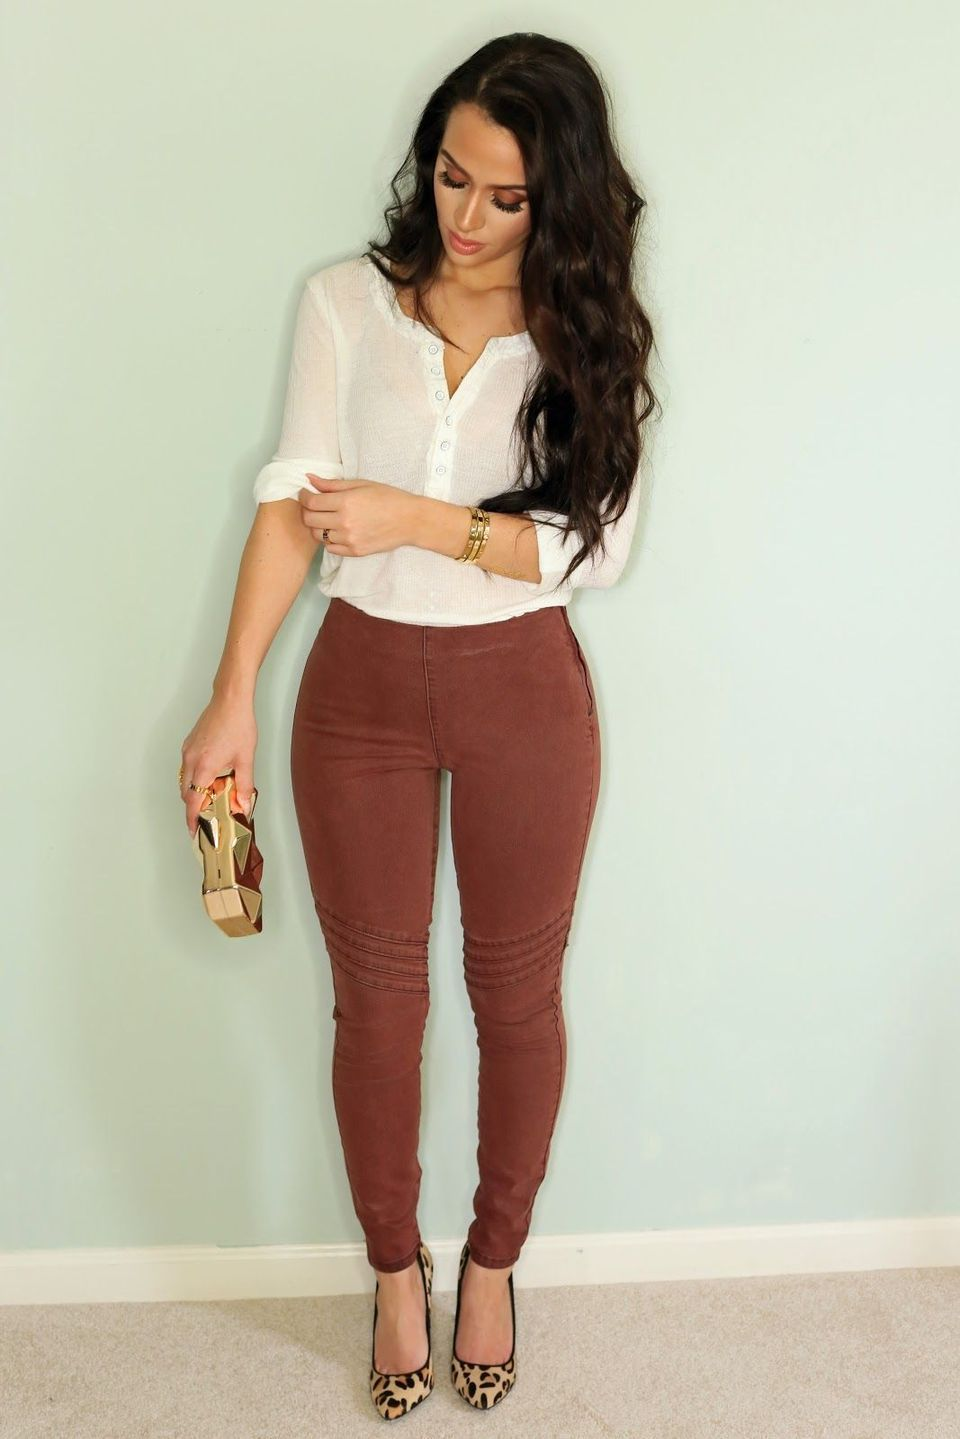 a8f7022a09a7 Pretty Casual Spring Fashion Outfits for Teen Girls 25